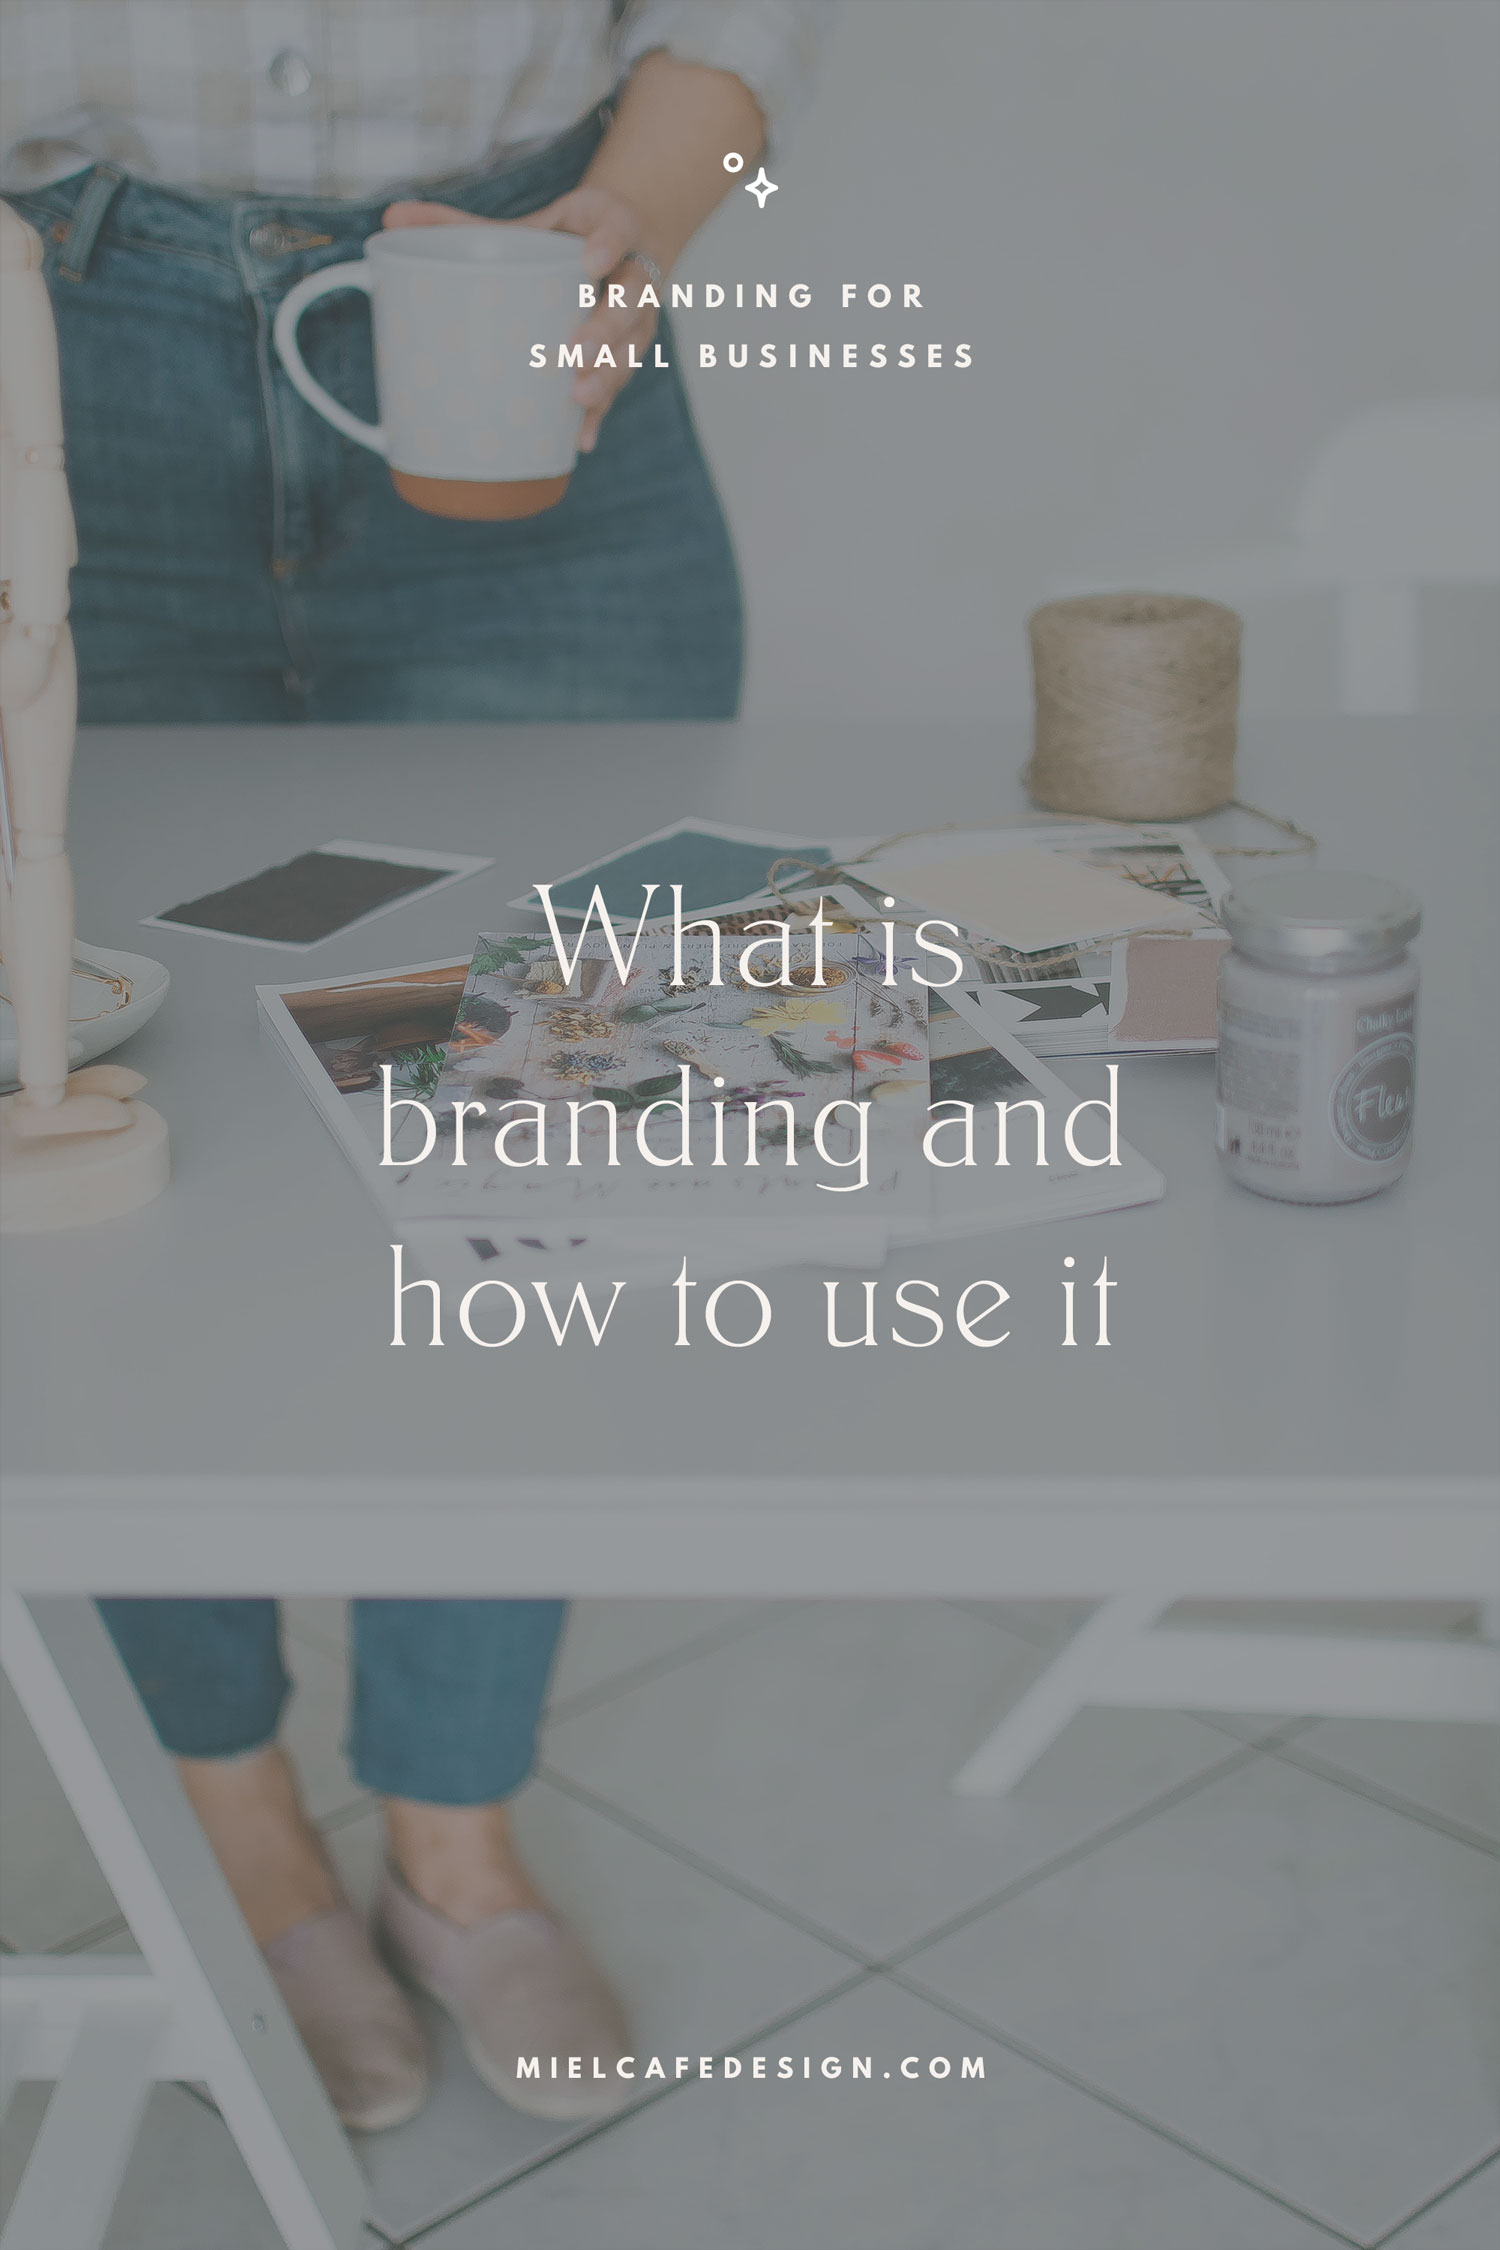 """Branding for small businesses: what is branding, how to use it, difference between """"branding"""" and """"brand"""""""